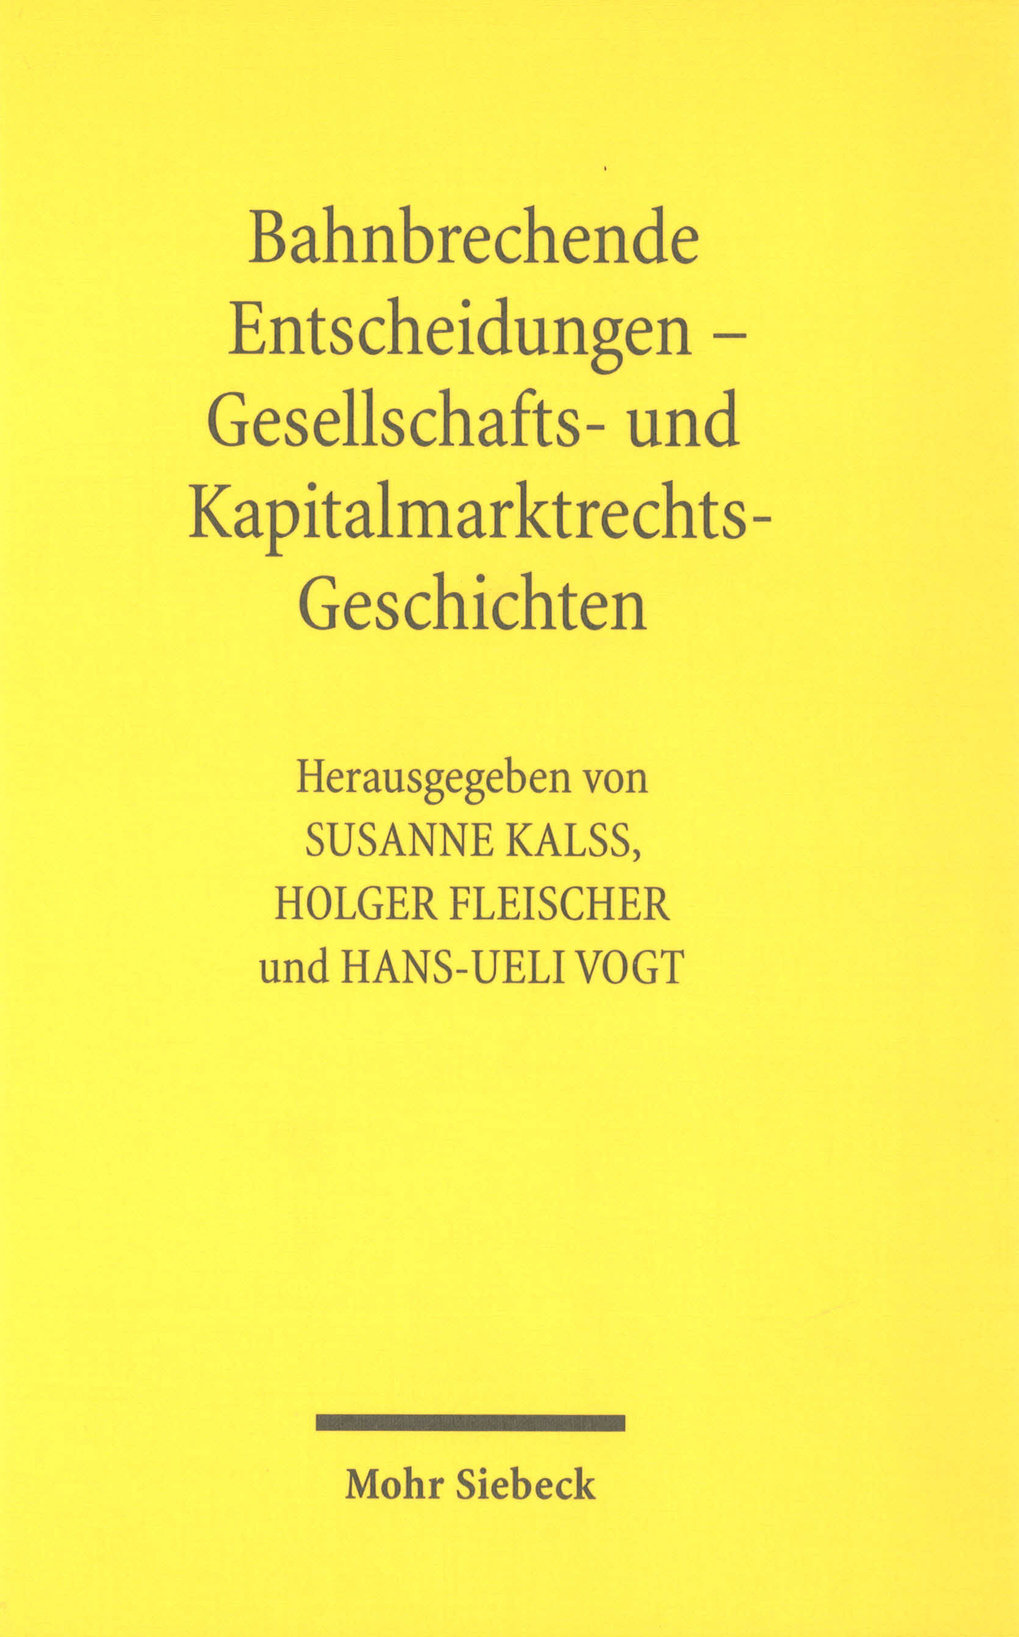 Company Law and Capital Markets Law in Germany, Austria and Switzerland